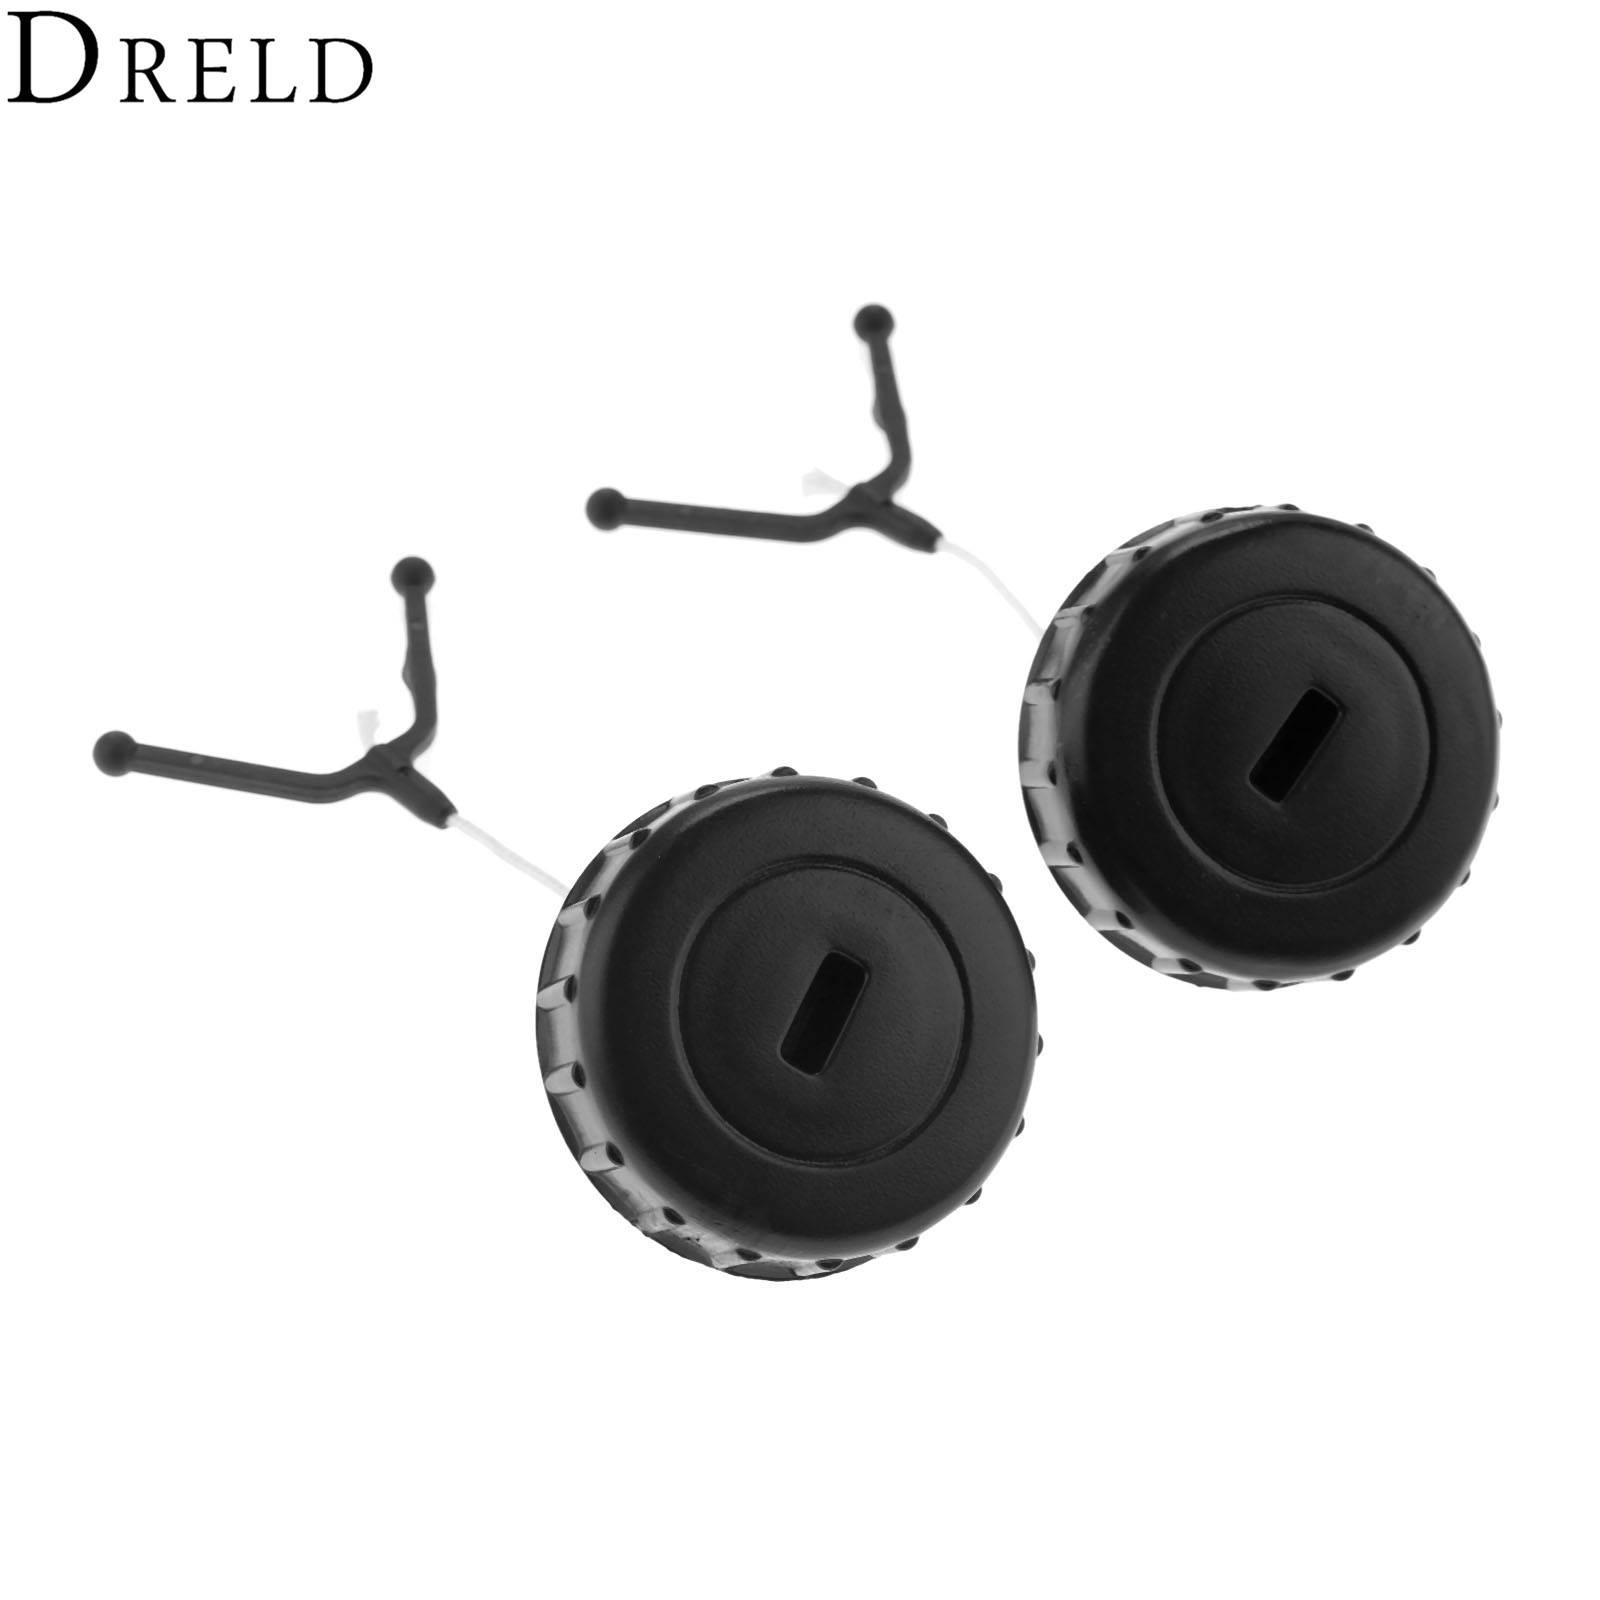 DRELD 2pcs Plastic Fuel Gas Petrol Cap Oil Caps For STIHL 017 018 MS170 MS180 Chainsaw 1130 350 0500 Garden Power Tools